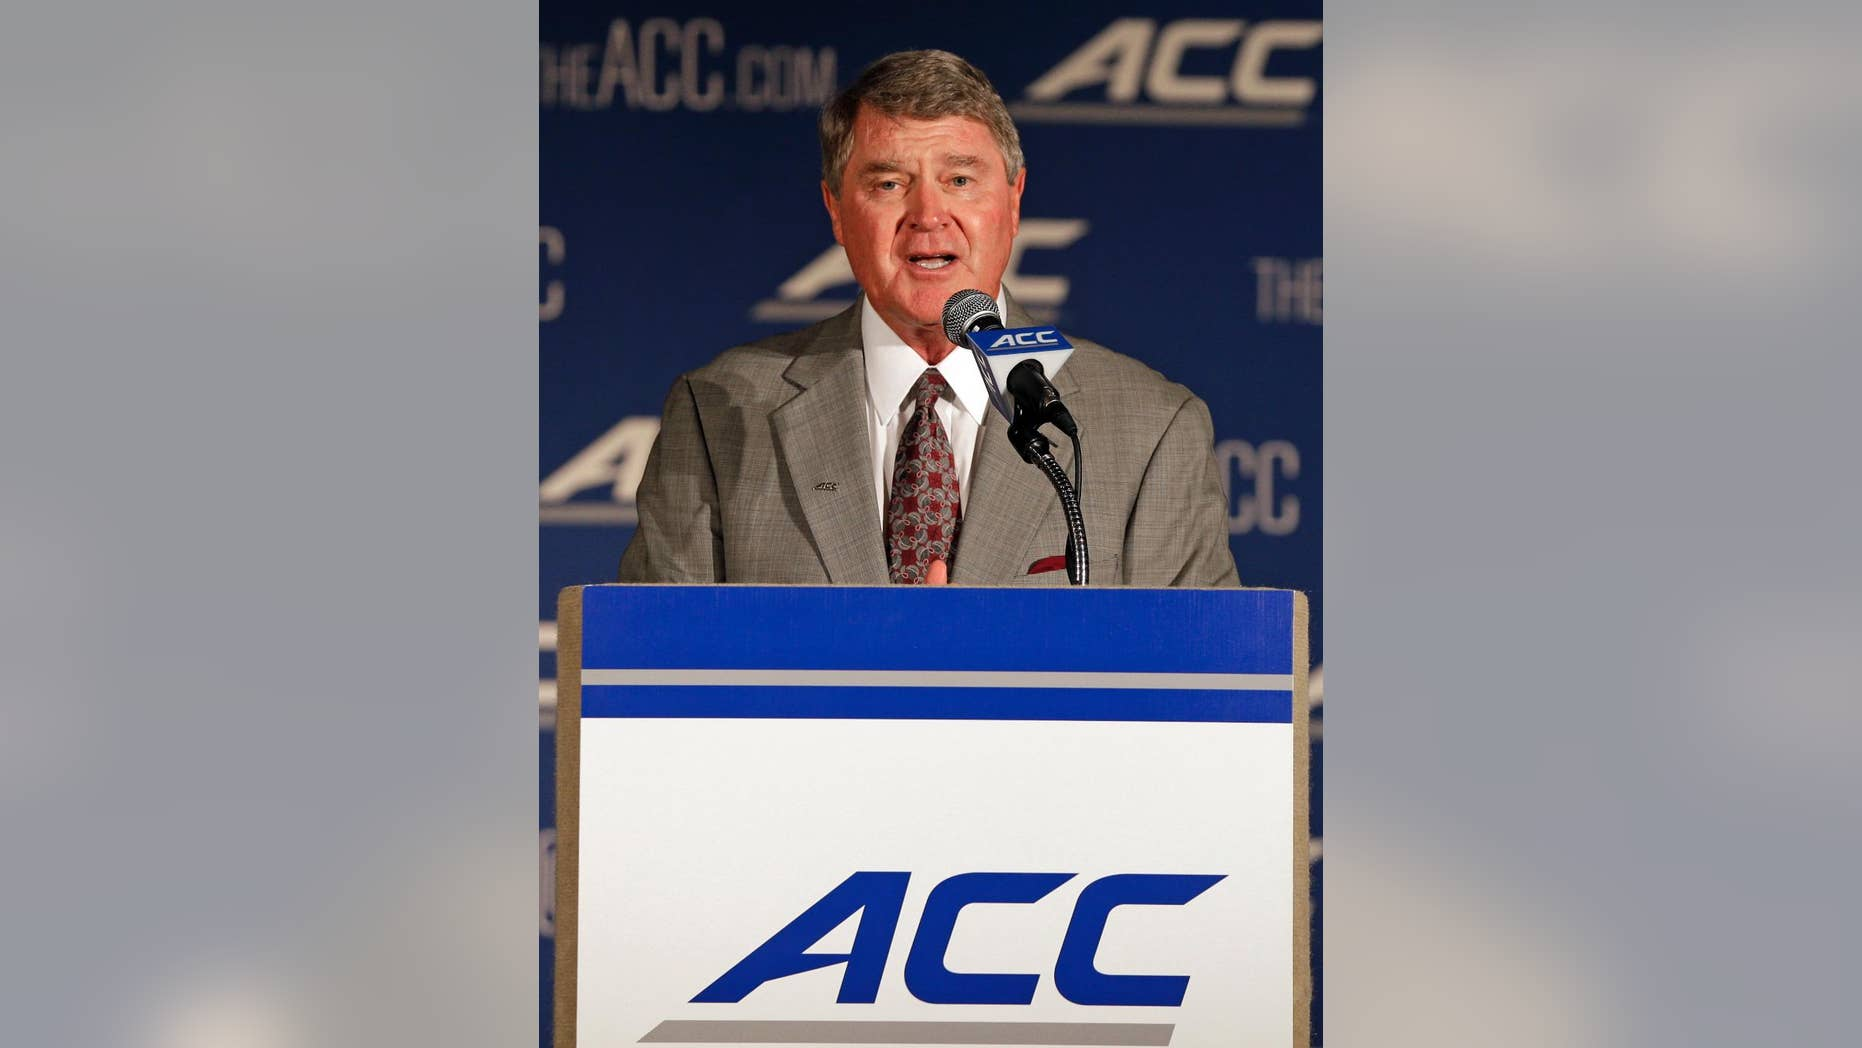 Atlantic Coast Conference commissioner John Swofford speaks during a news conference at the Atlantic Coast Conference Football kickoff in Greensboro, N.C., Sunday, July 20, 2014. (AP Photo/Chuck Burton)